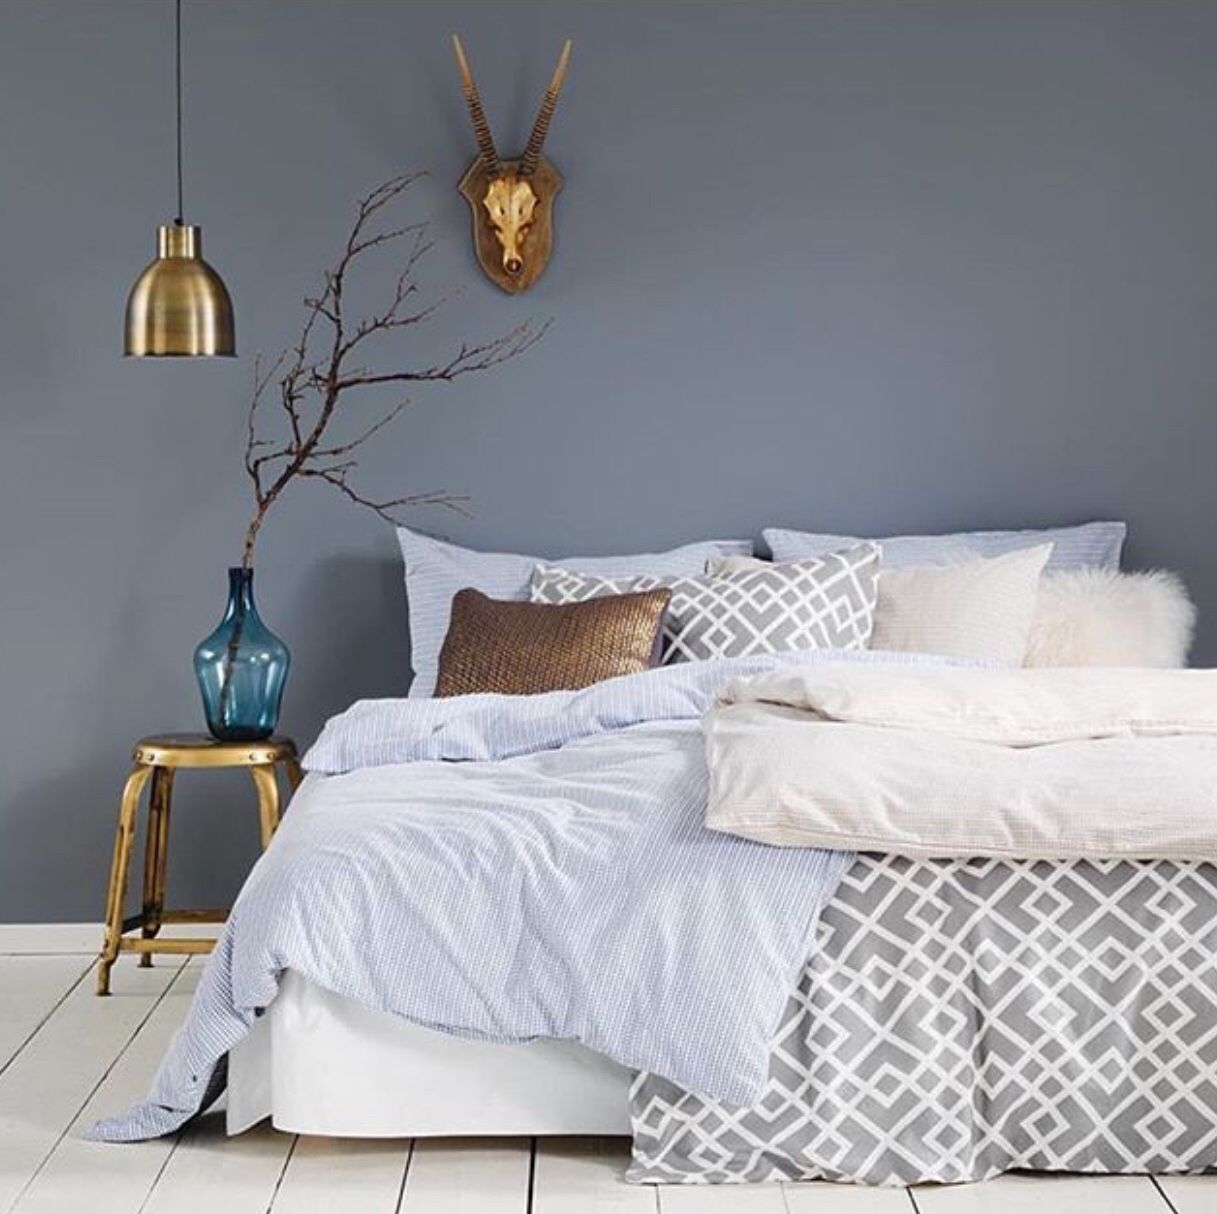 Bedroom wallcolour arcadia in 2019 pinterest schlafzimmer wohnung schlafzimmer and - Schlafzimmer ideen weiay ...